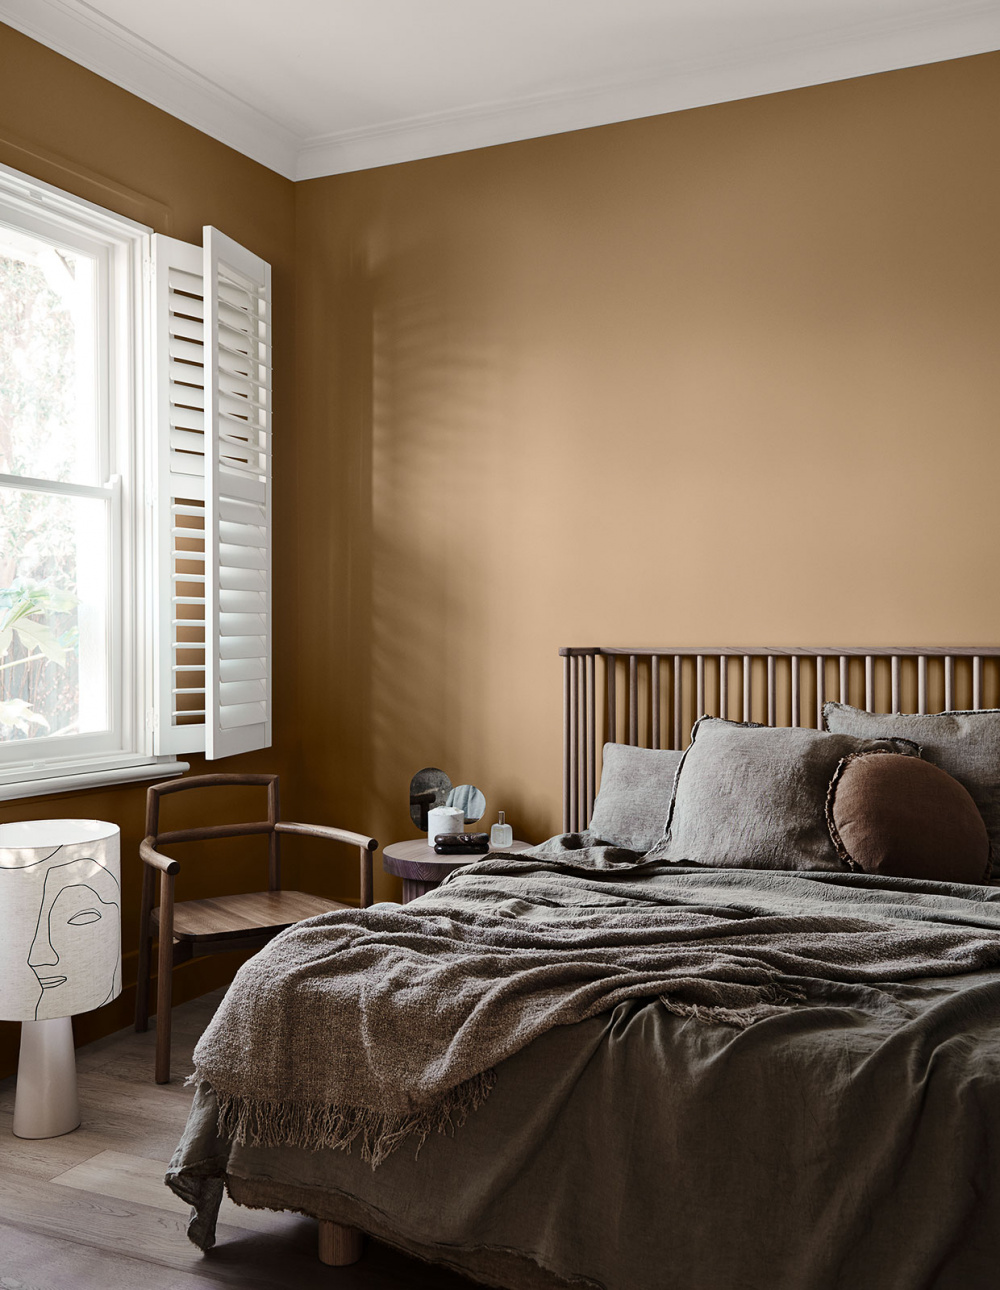 Eclectic Trends | 4 Color Trends 2020 Dulux Australia- Grounded